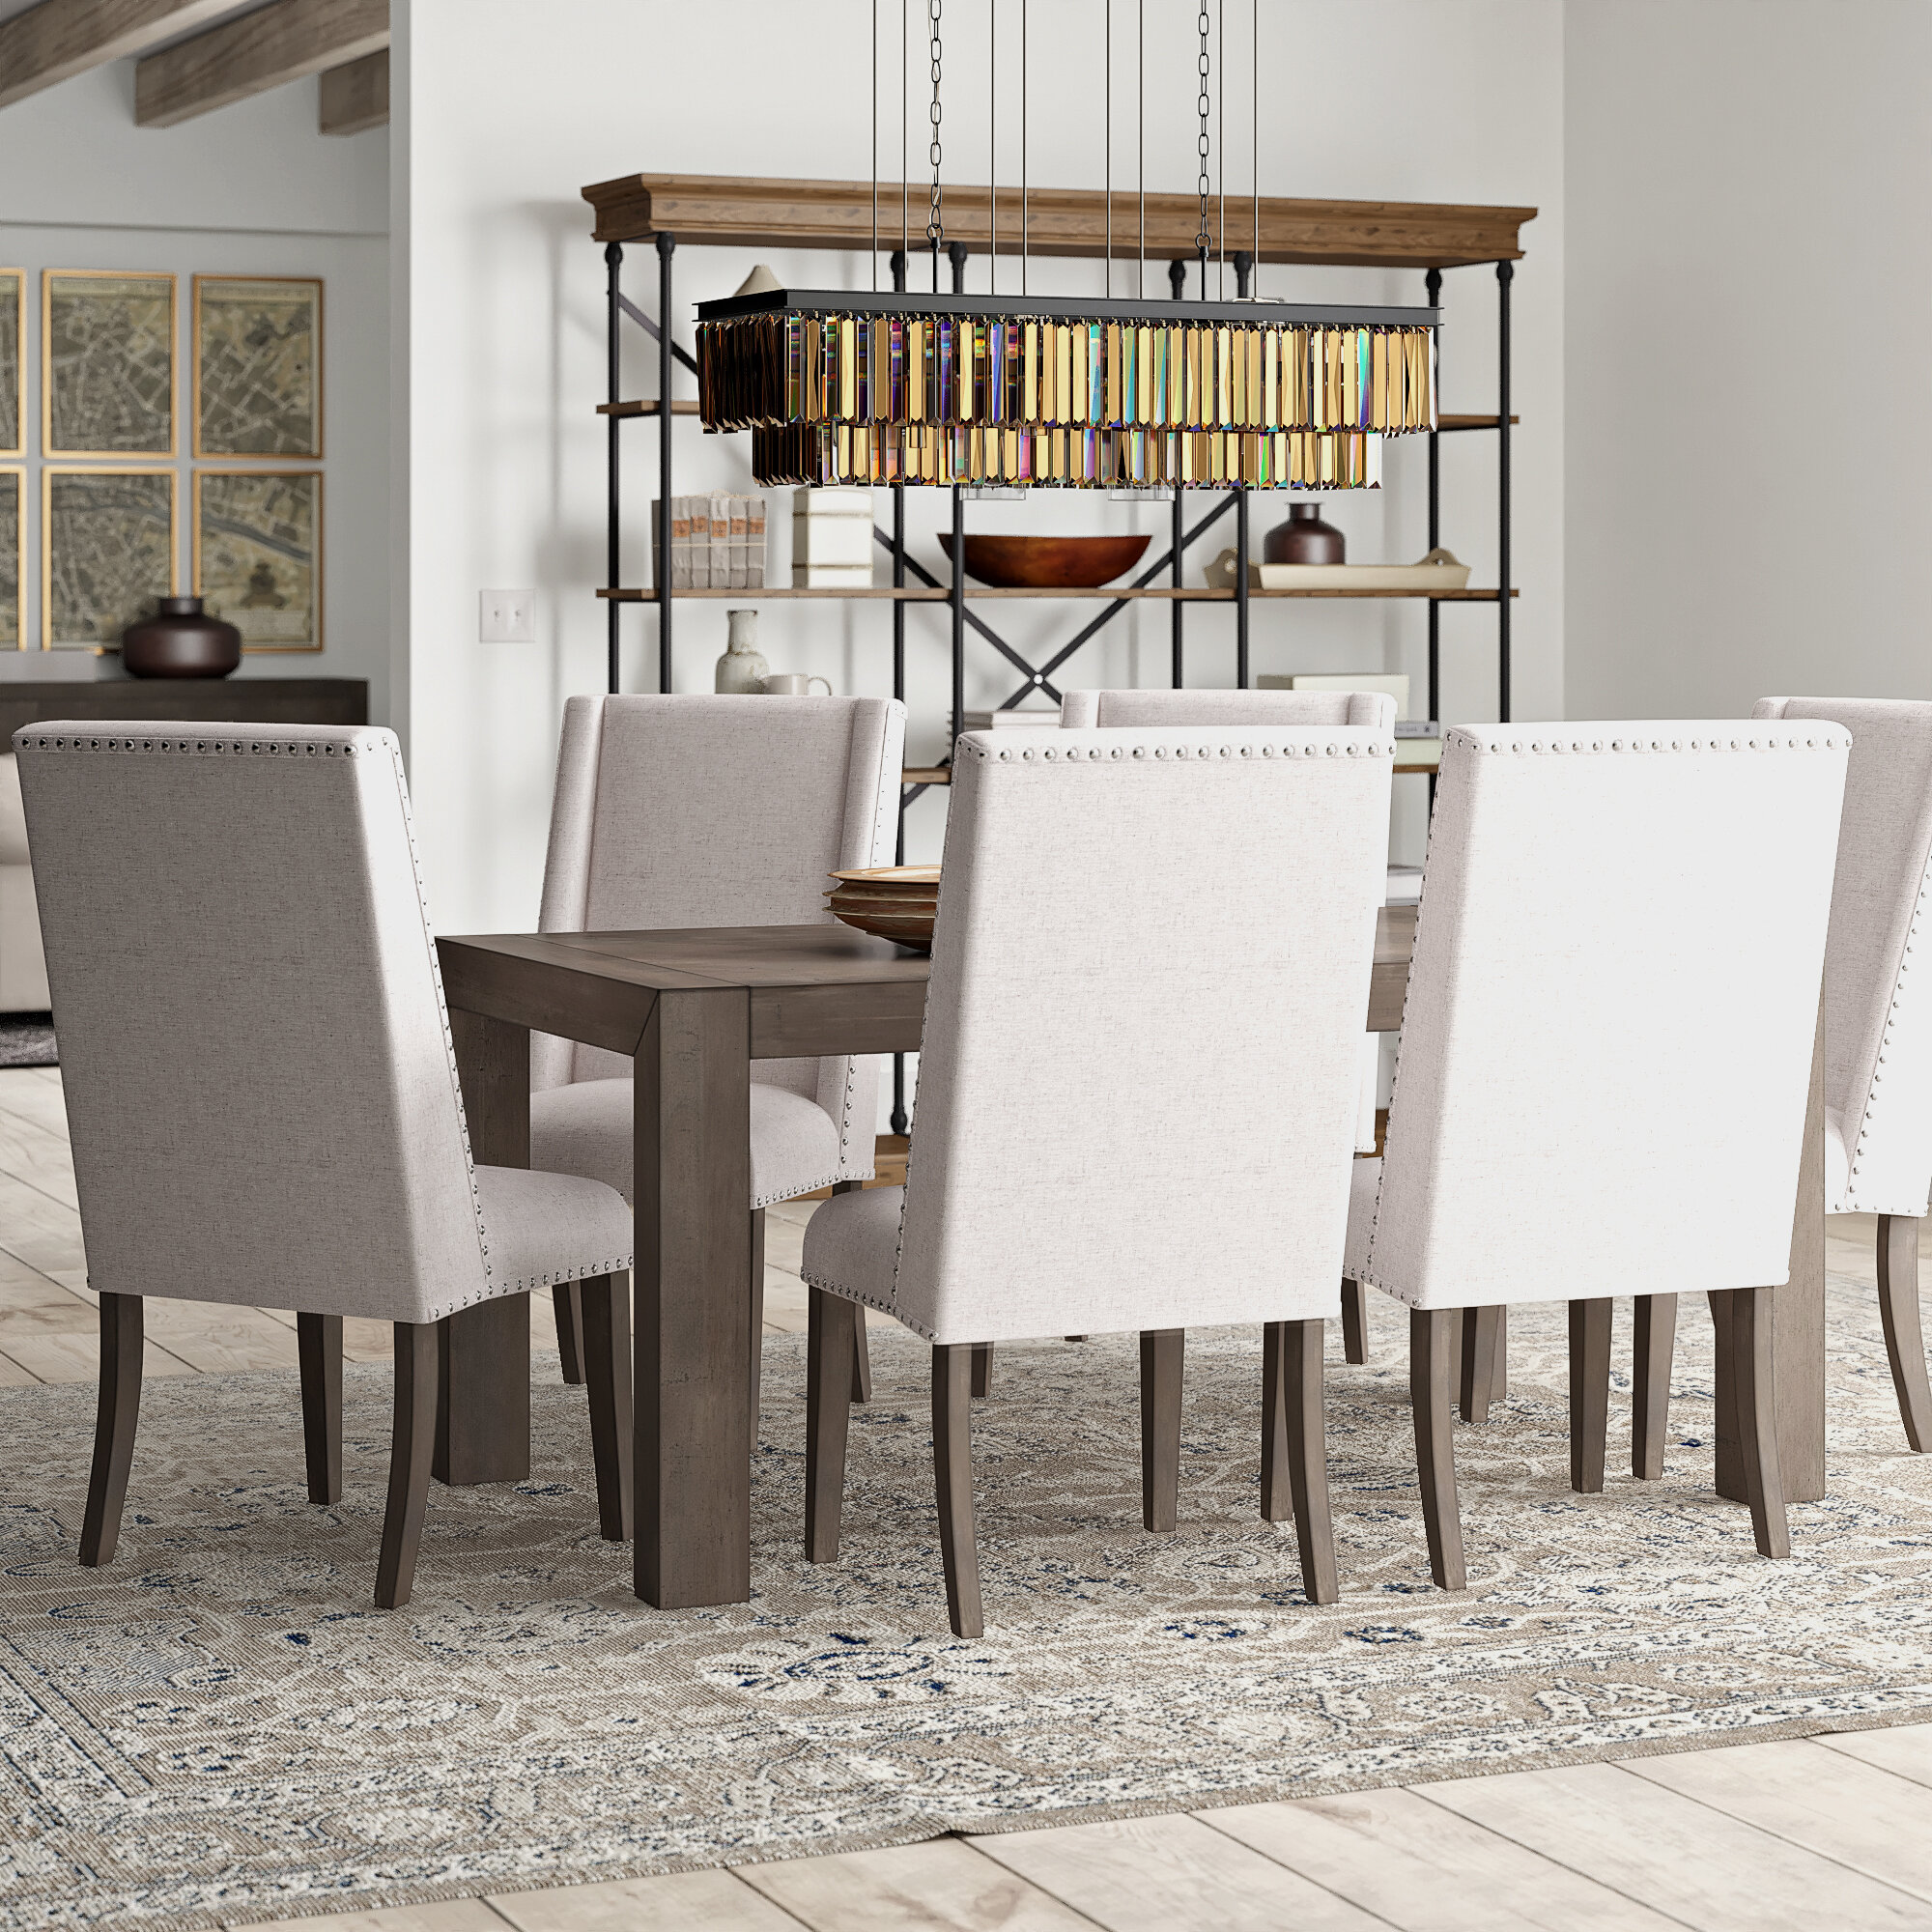 Wayfair   9 Piece Kitchen & Dining Room Sets You'll Love in 9